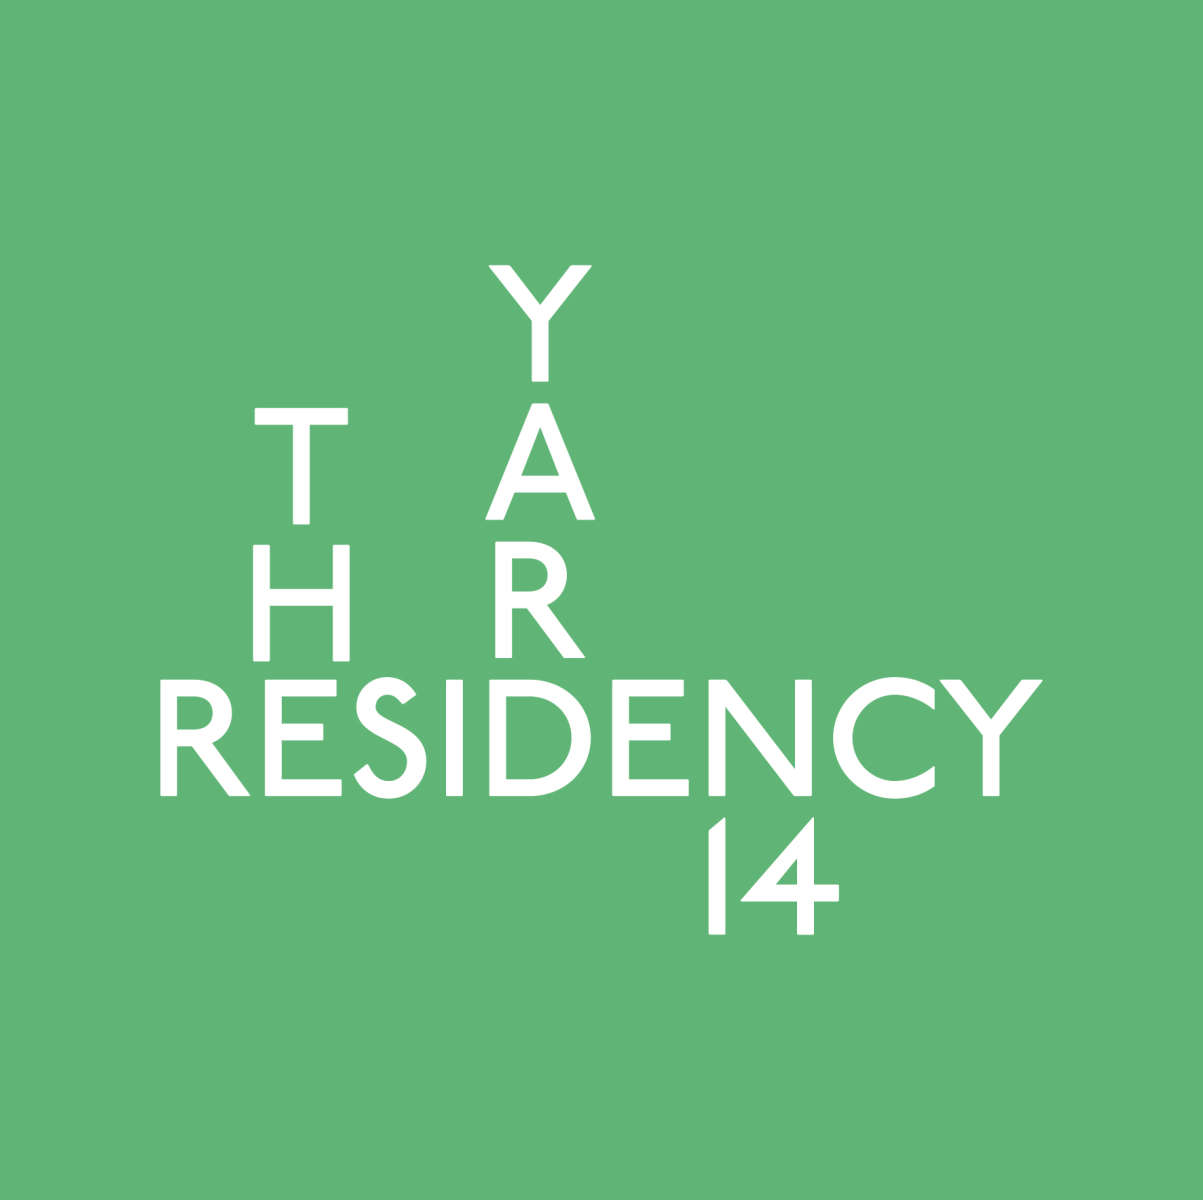 yard14logo_green